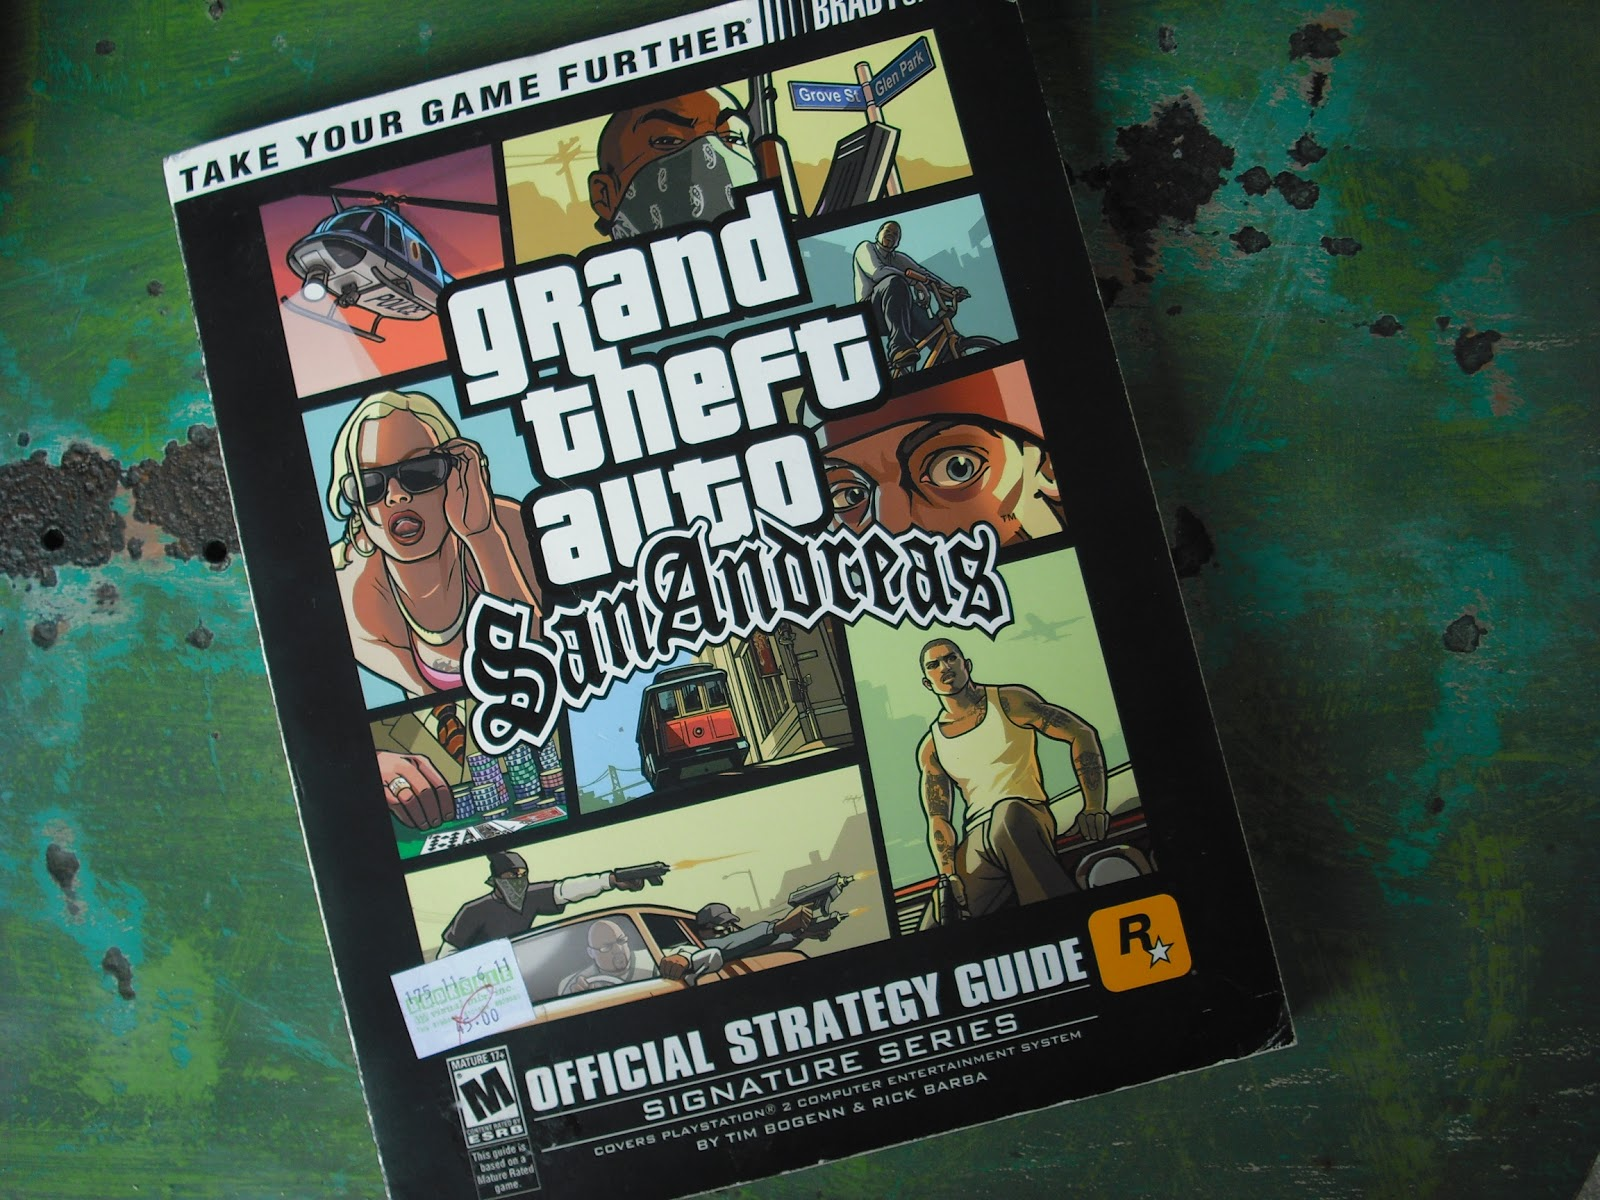 GTA+San+Andreas+Strategy+Guide+by+Brady+